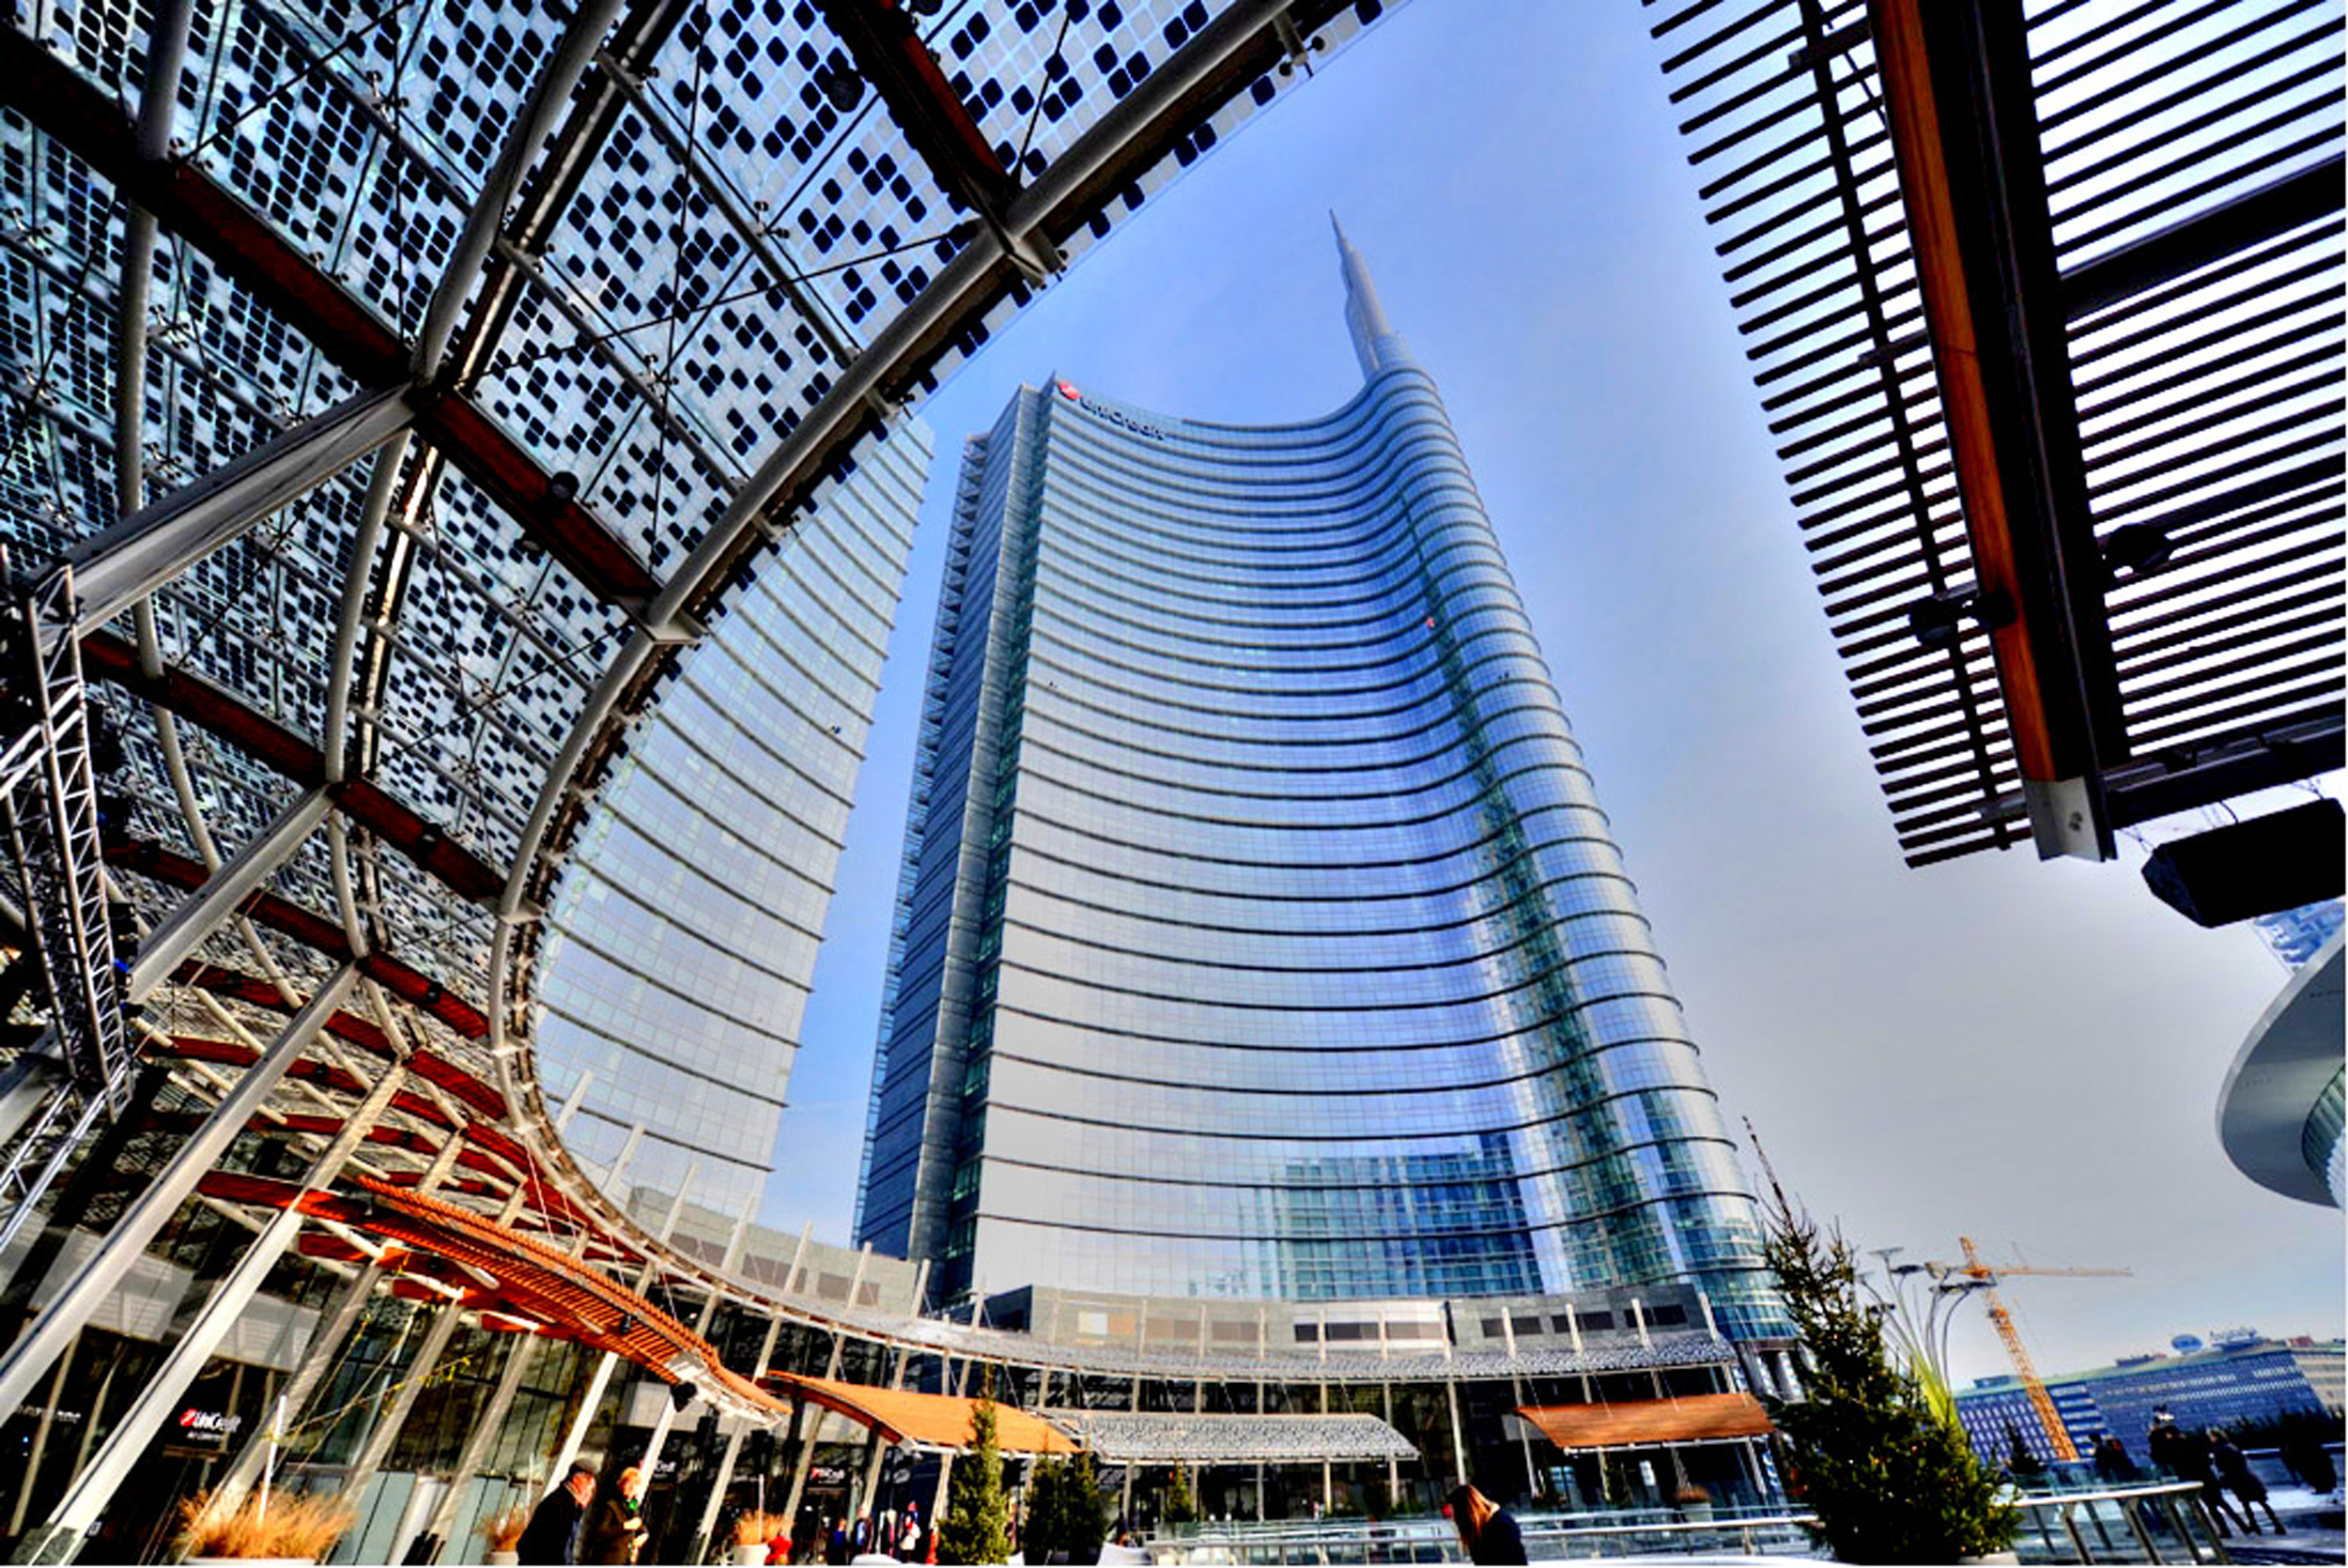 Piazza Gae Aulenti and the Unicredit Tower.